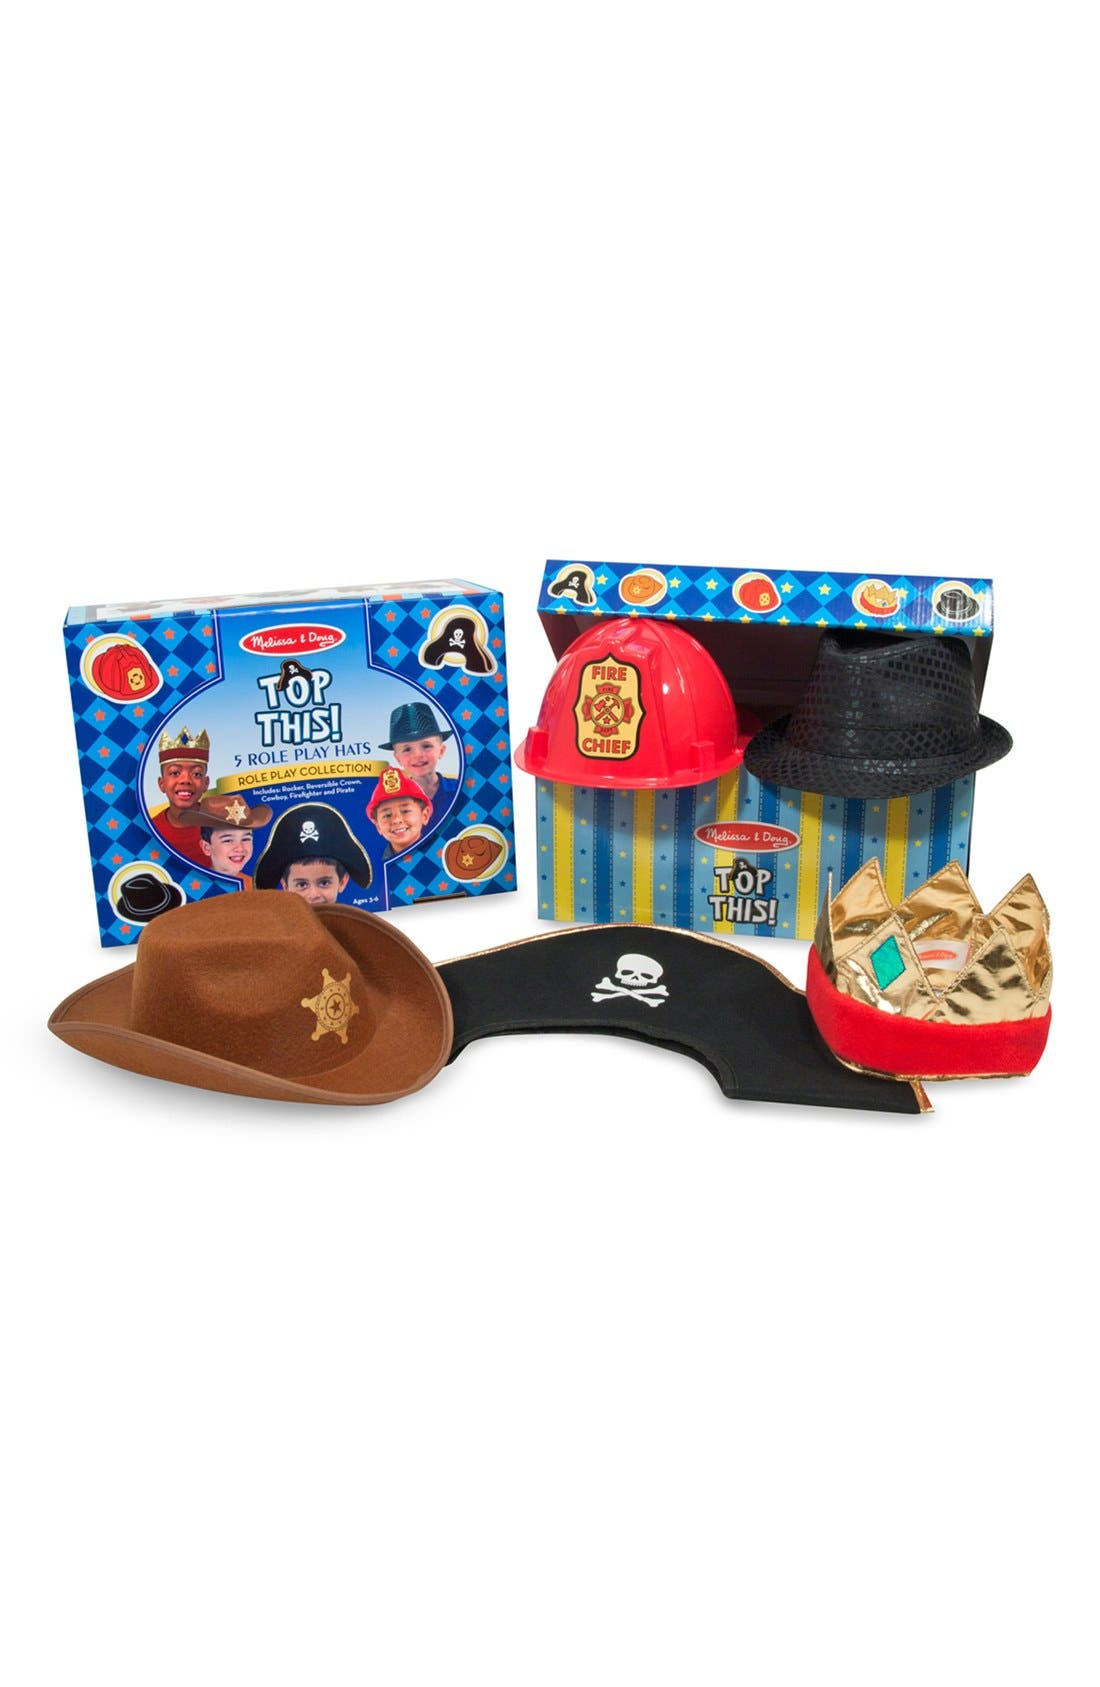 Main Image - Melissa & Doug 'Role Play Collection - Top This!' Hats